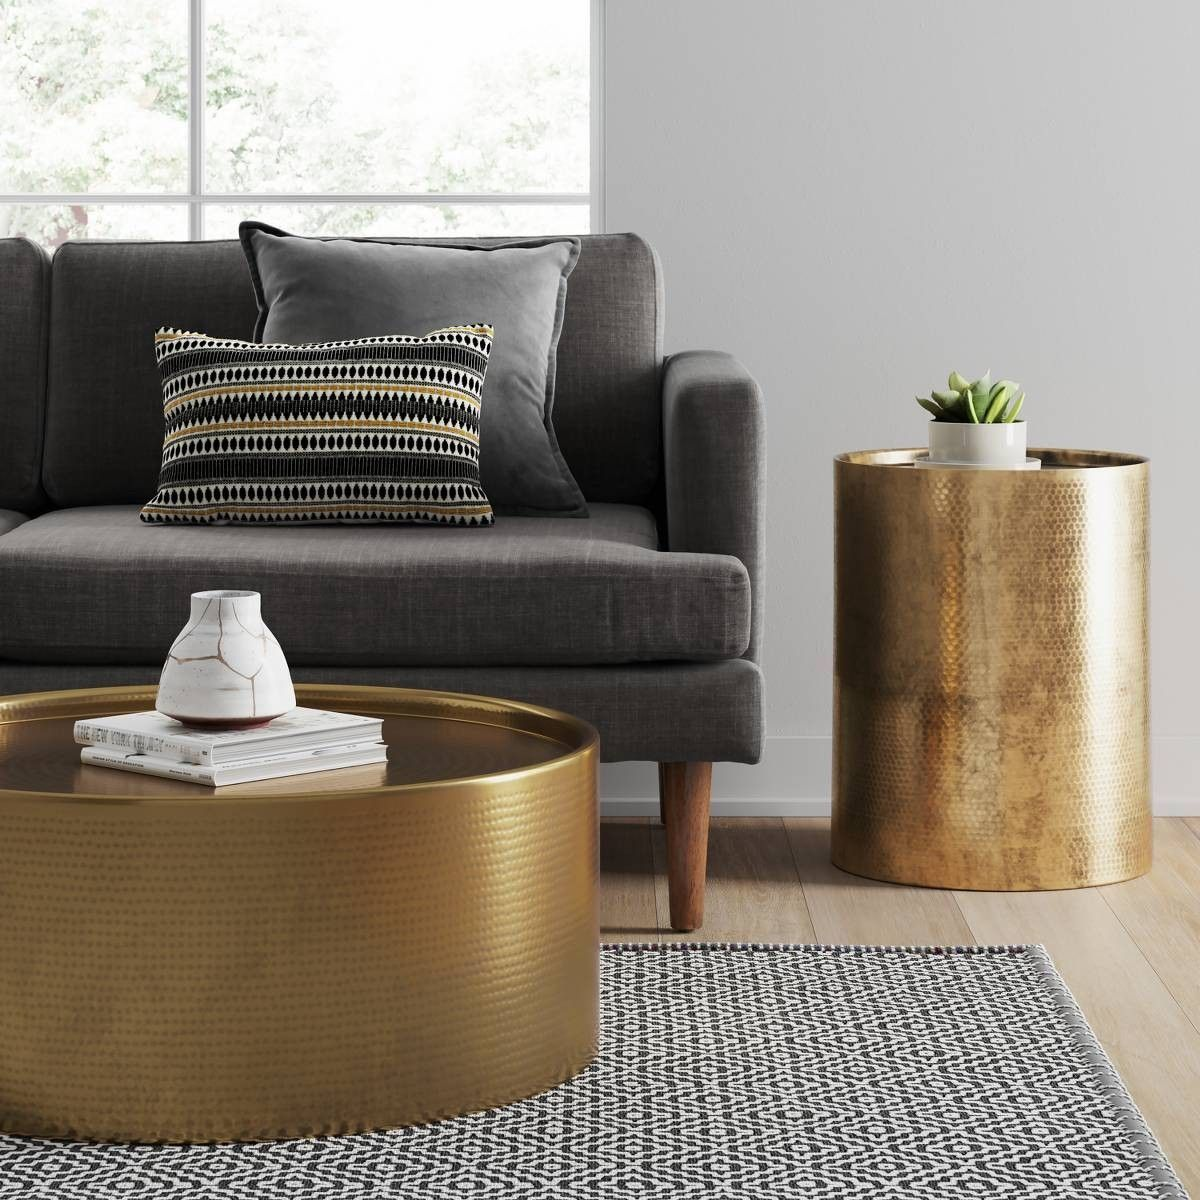 Brass coffee table and side Target Barrel coffee table